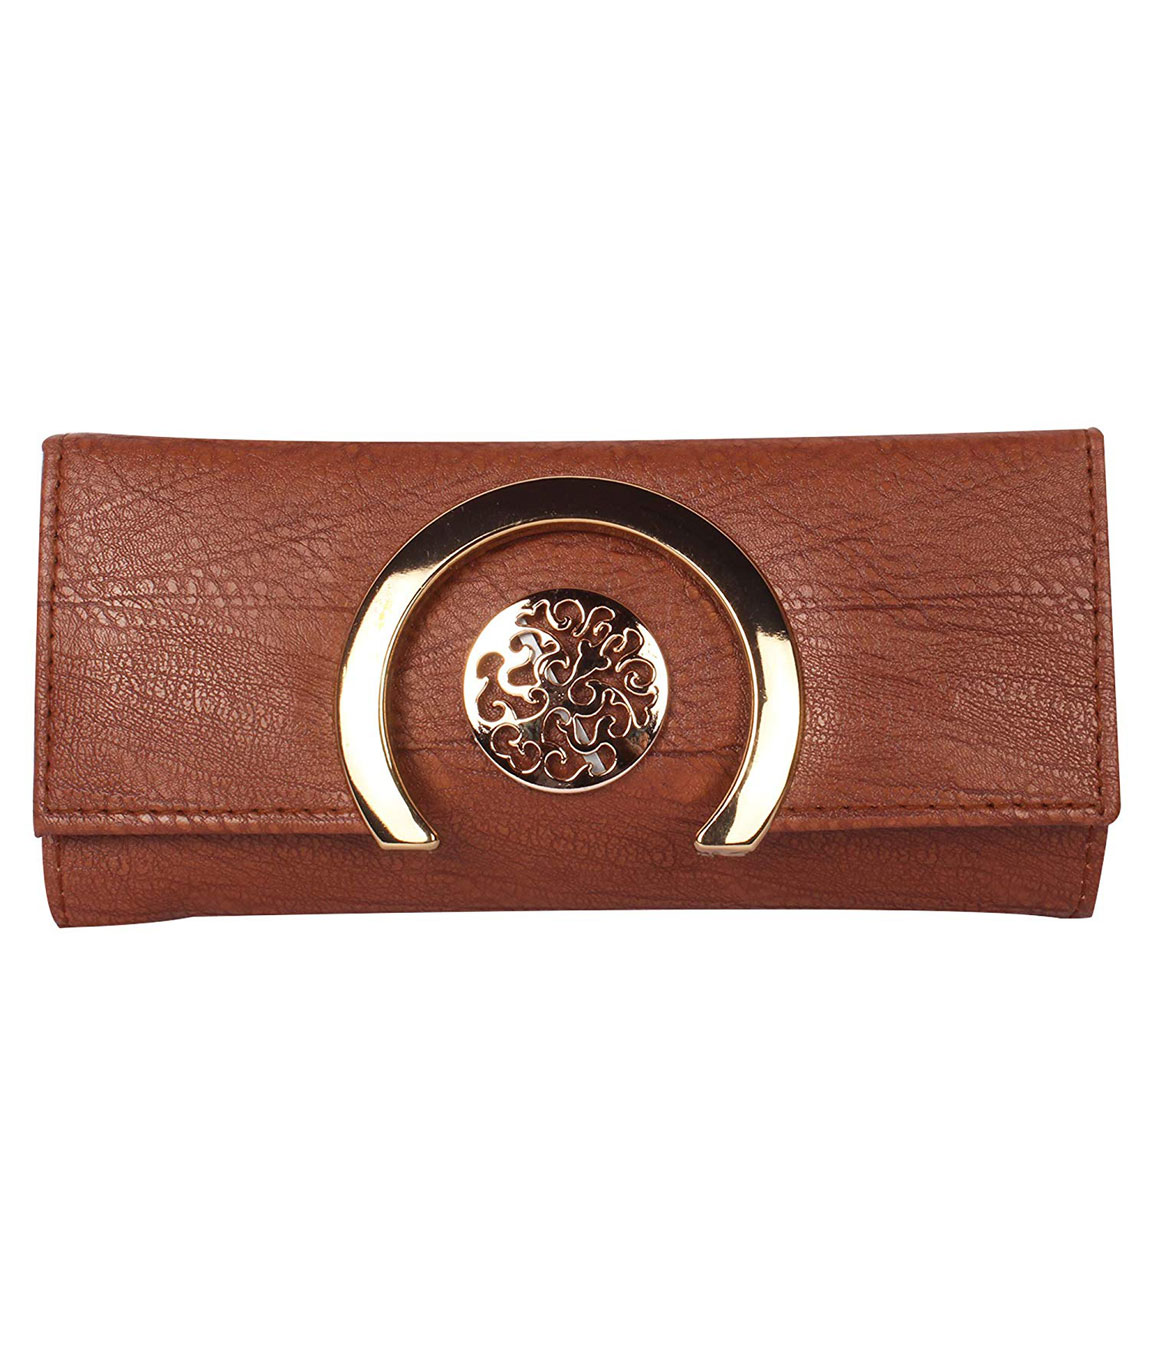 Women Girls Leather Wallets Lady Fashion Long Purse Handbag Women`s Clutches/Genuine Leather Wallet/Purse For Women and Girls(dark brown)